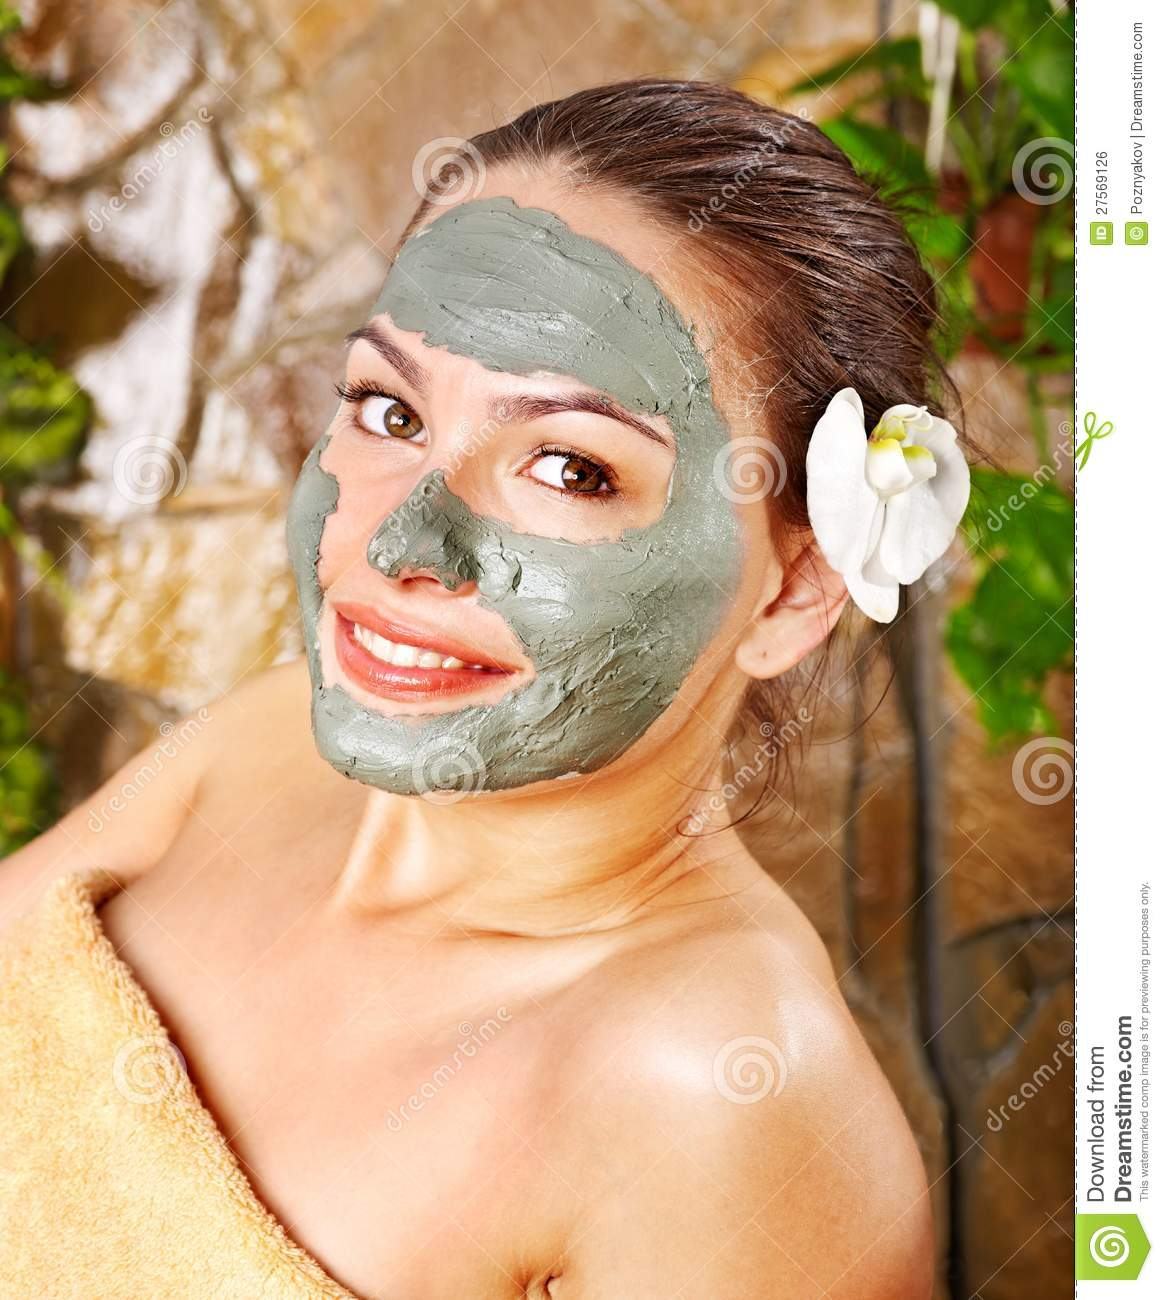 Apply facial mask